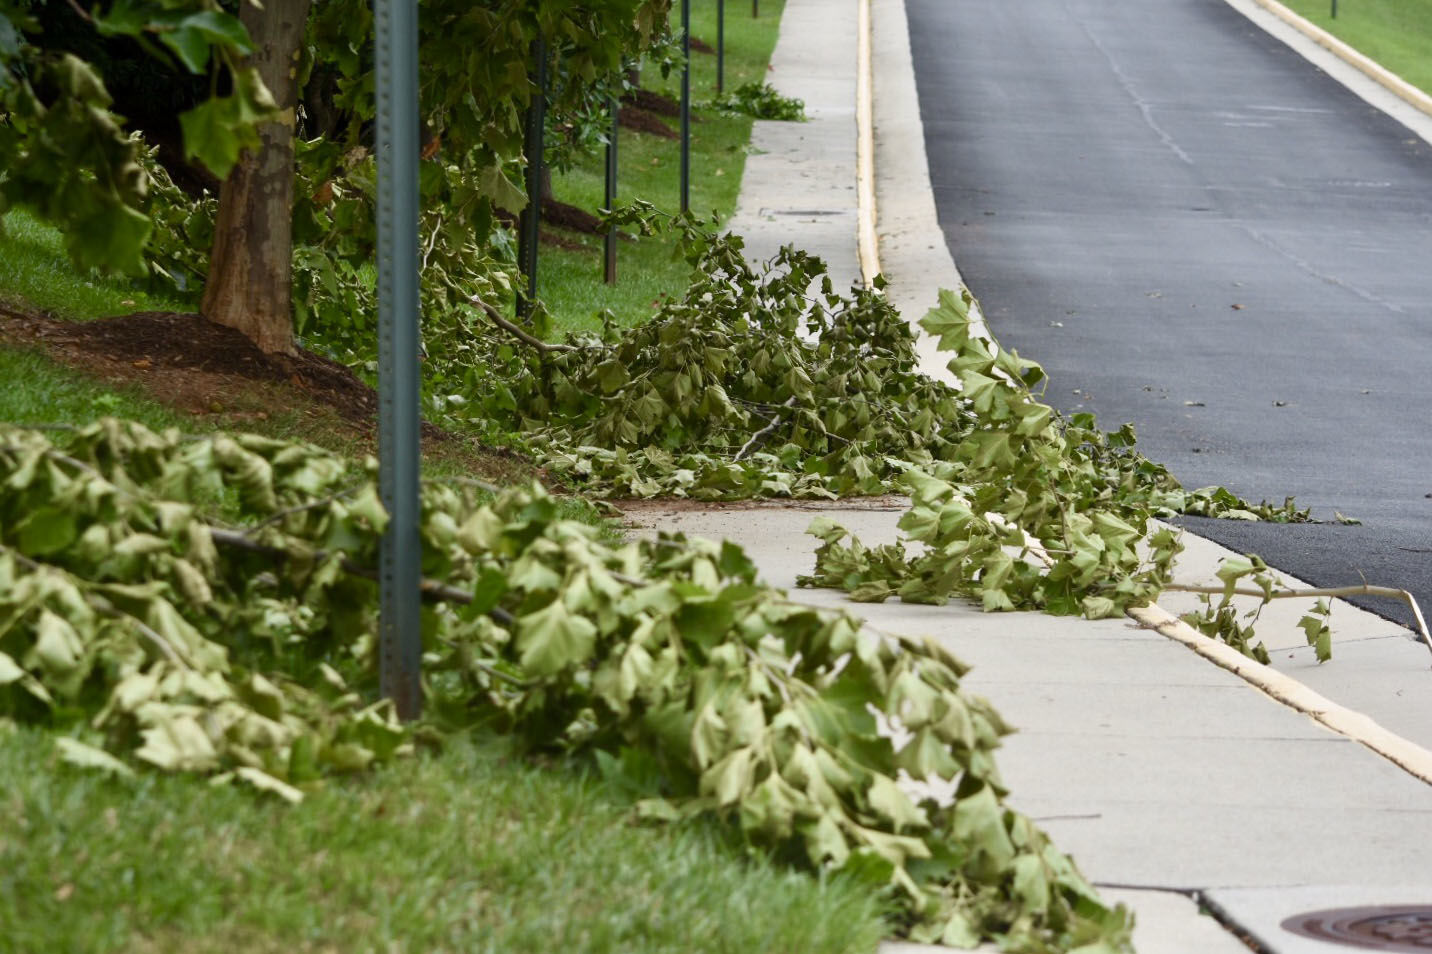 Downed trees in Alexandria near where an EF-0 tornado briefly touched down July 24. (WTOP/Dave Dildine)